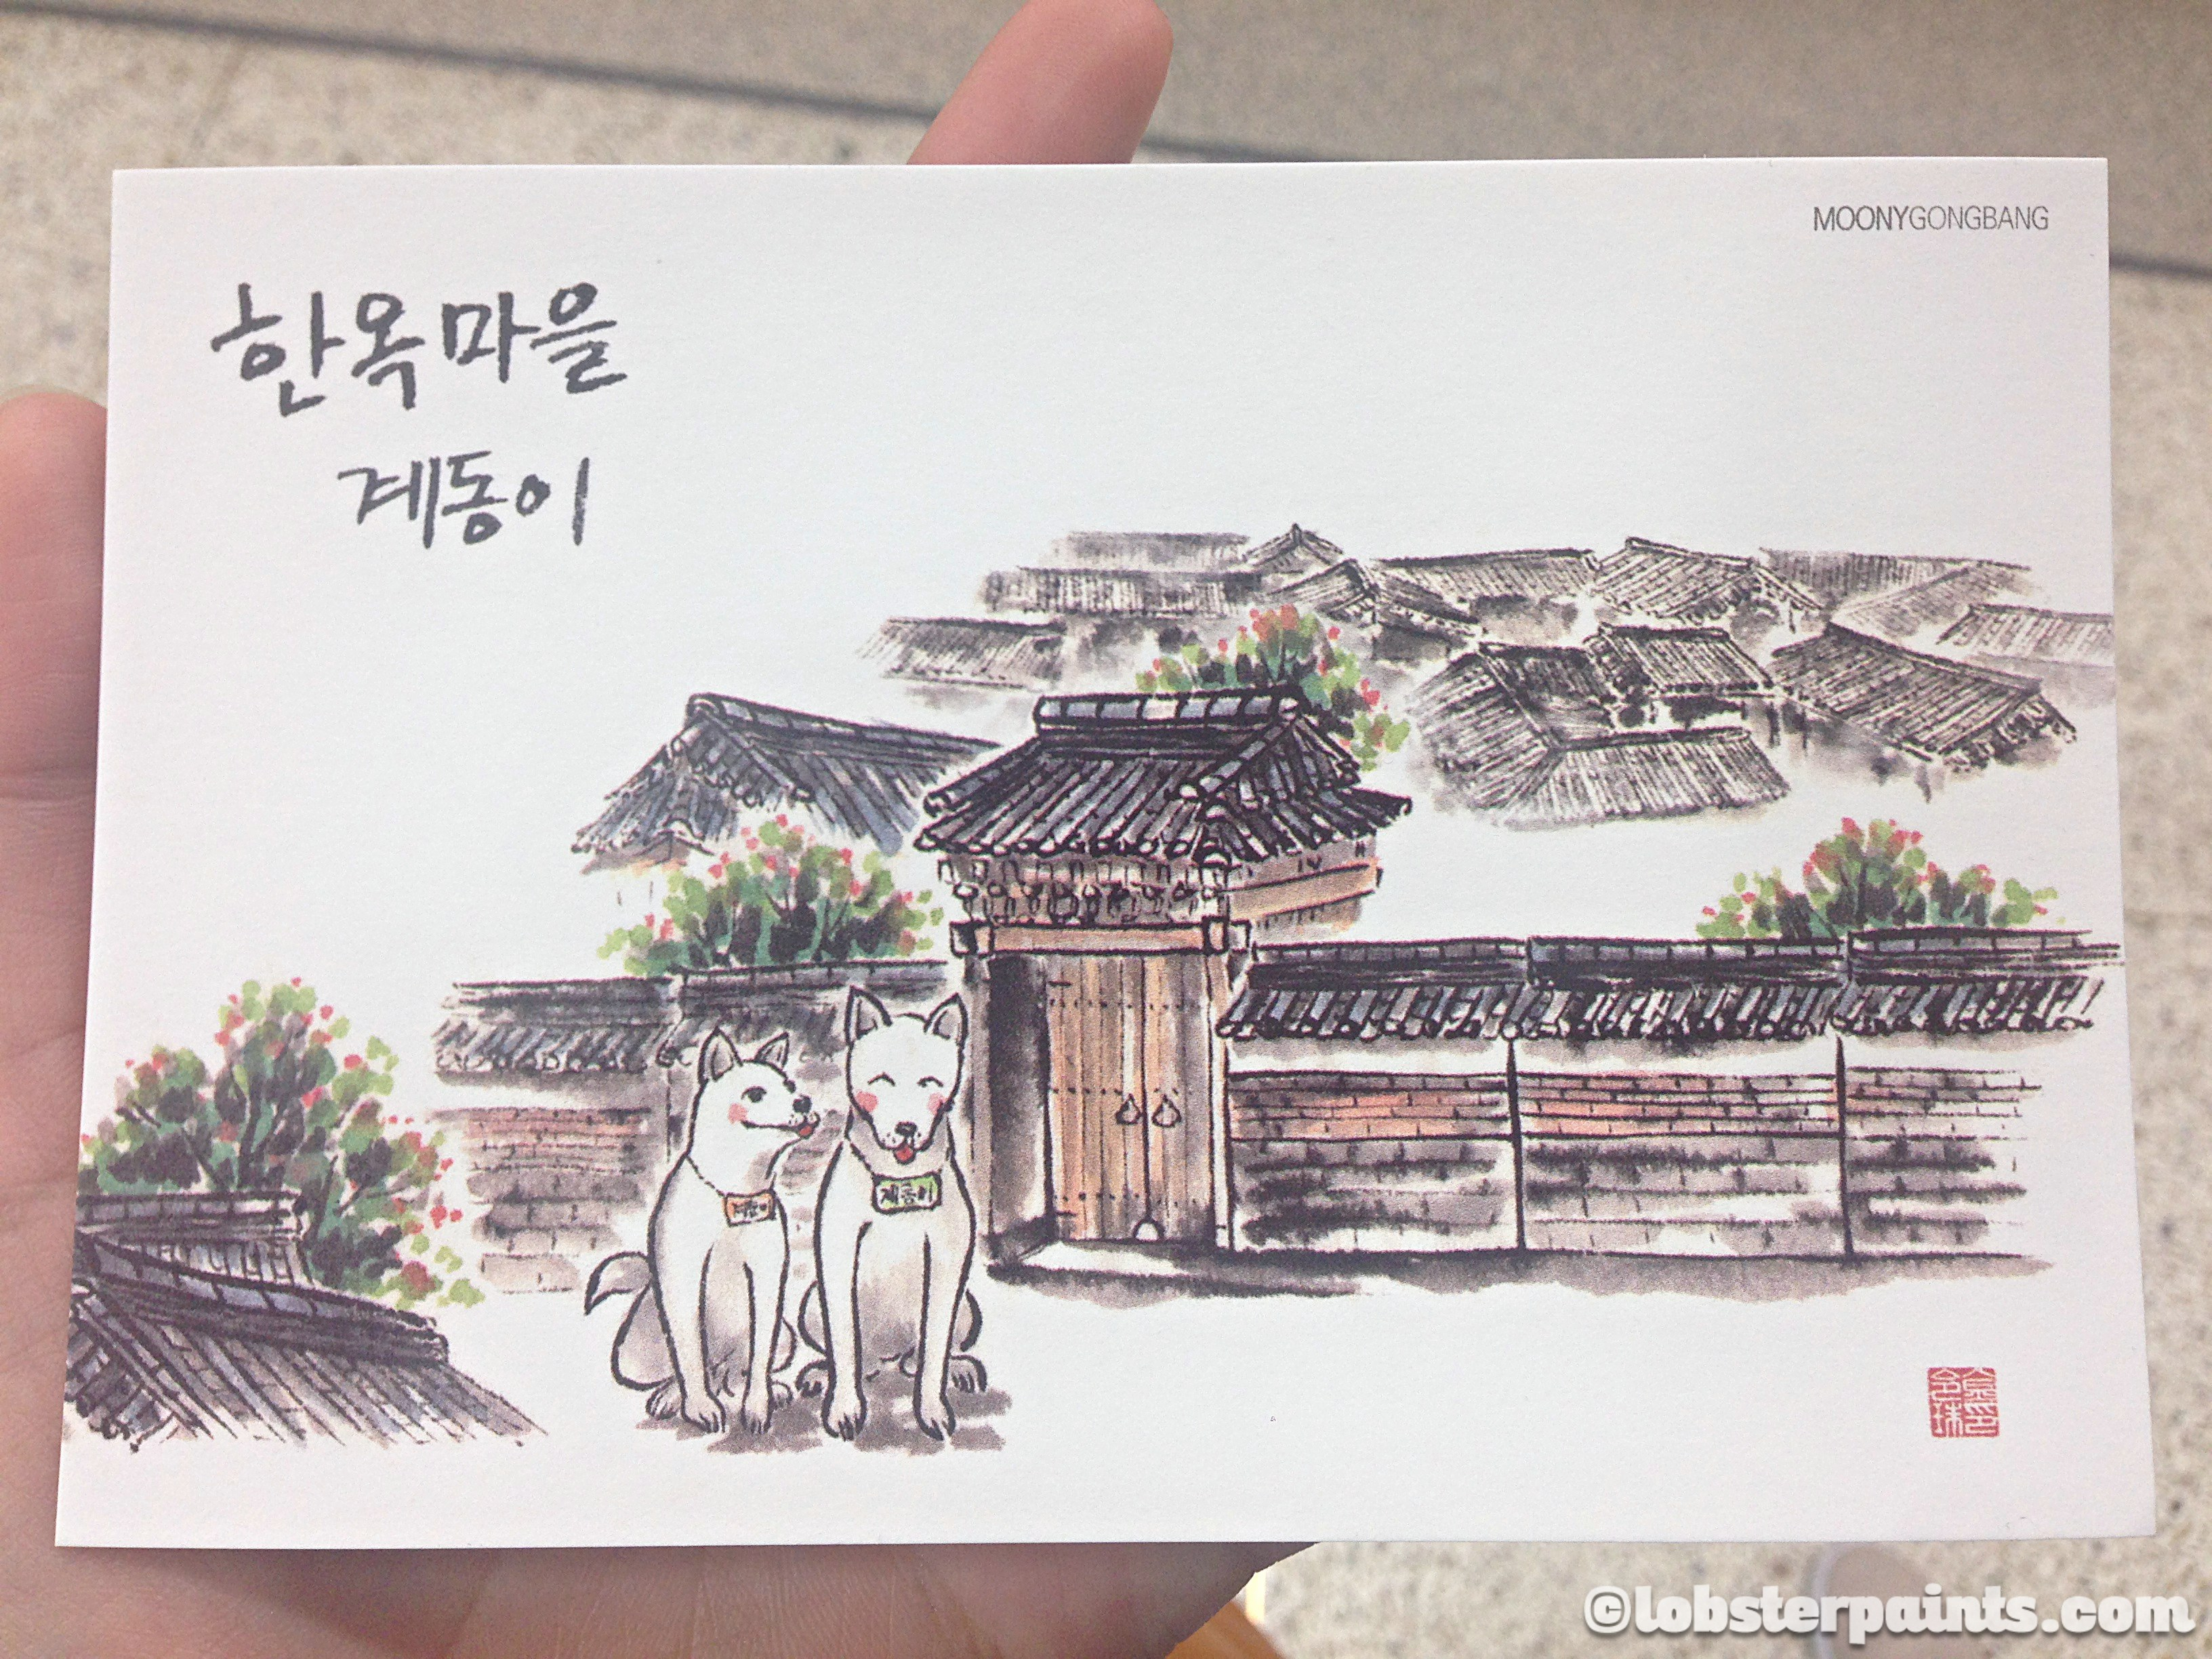 Hanok Village Postcard 한옥마을 | Seoul, South Korea